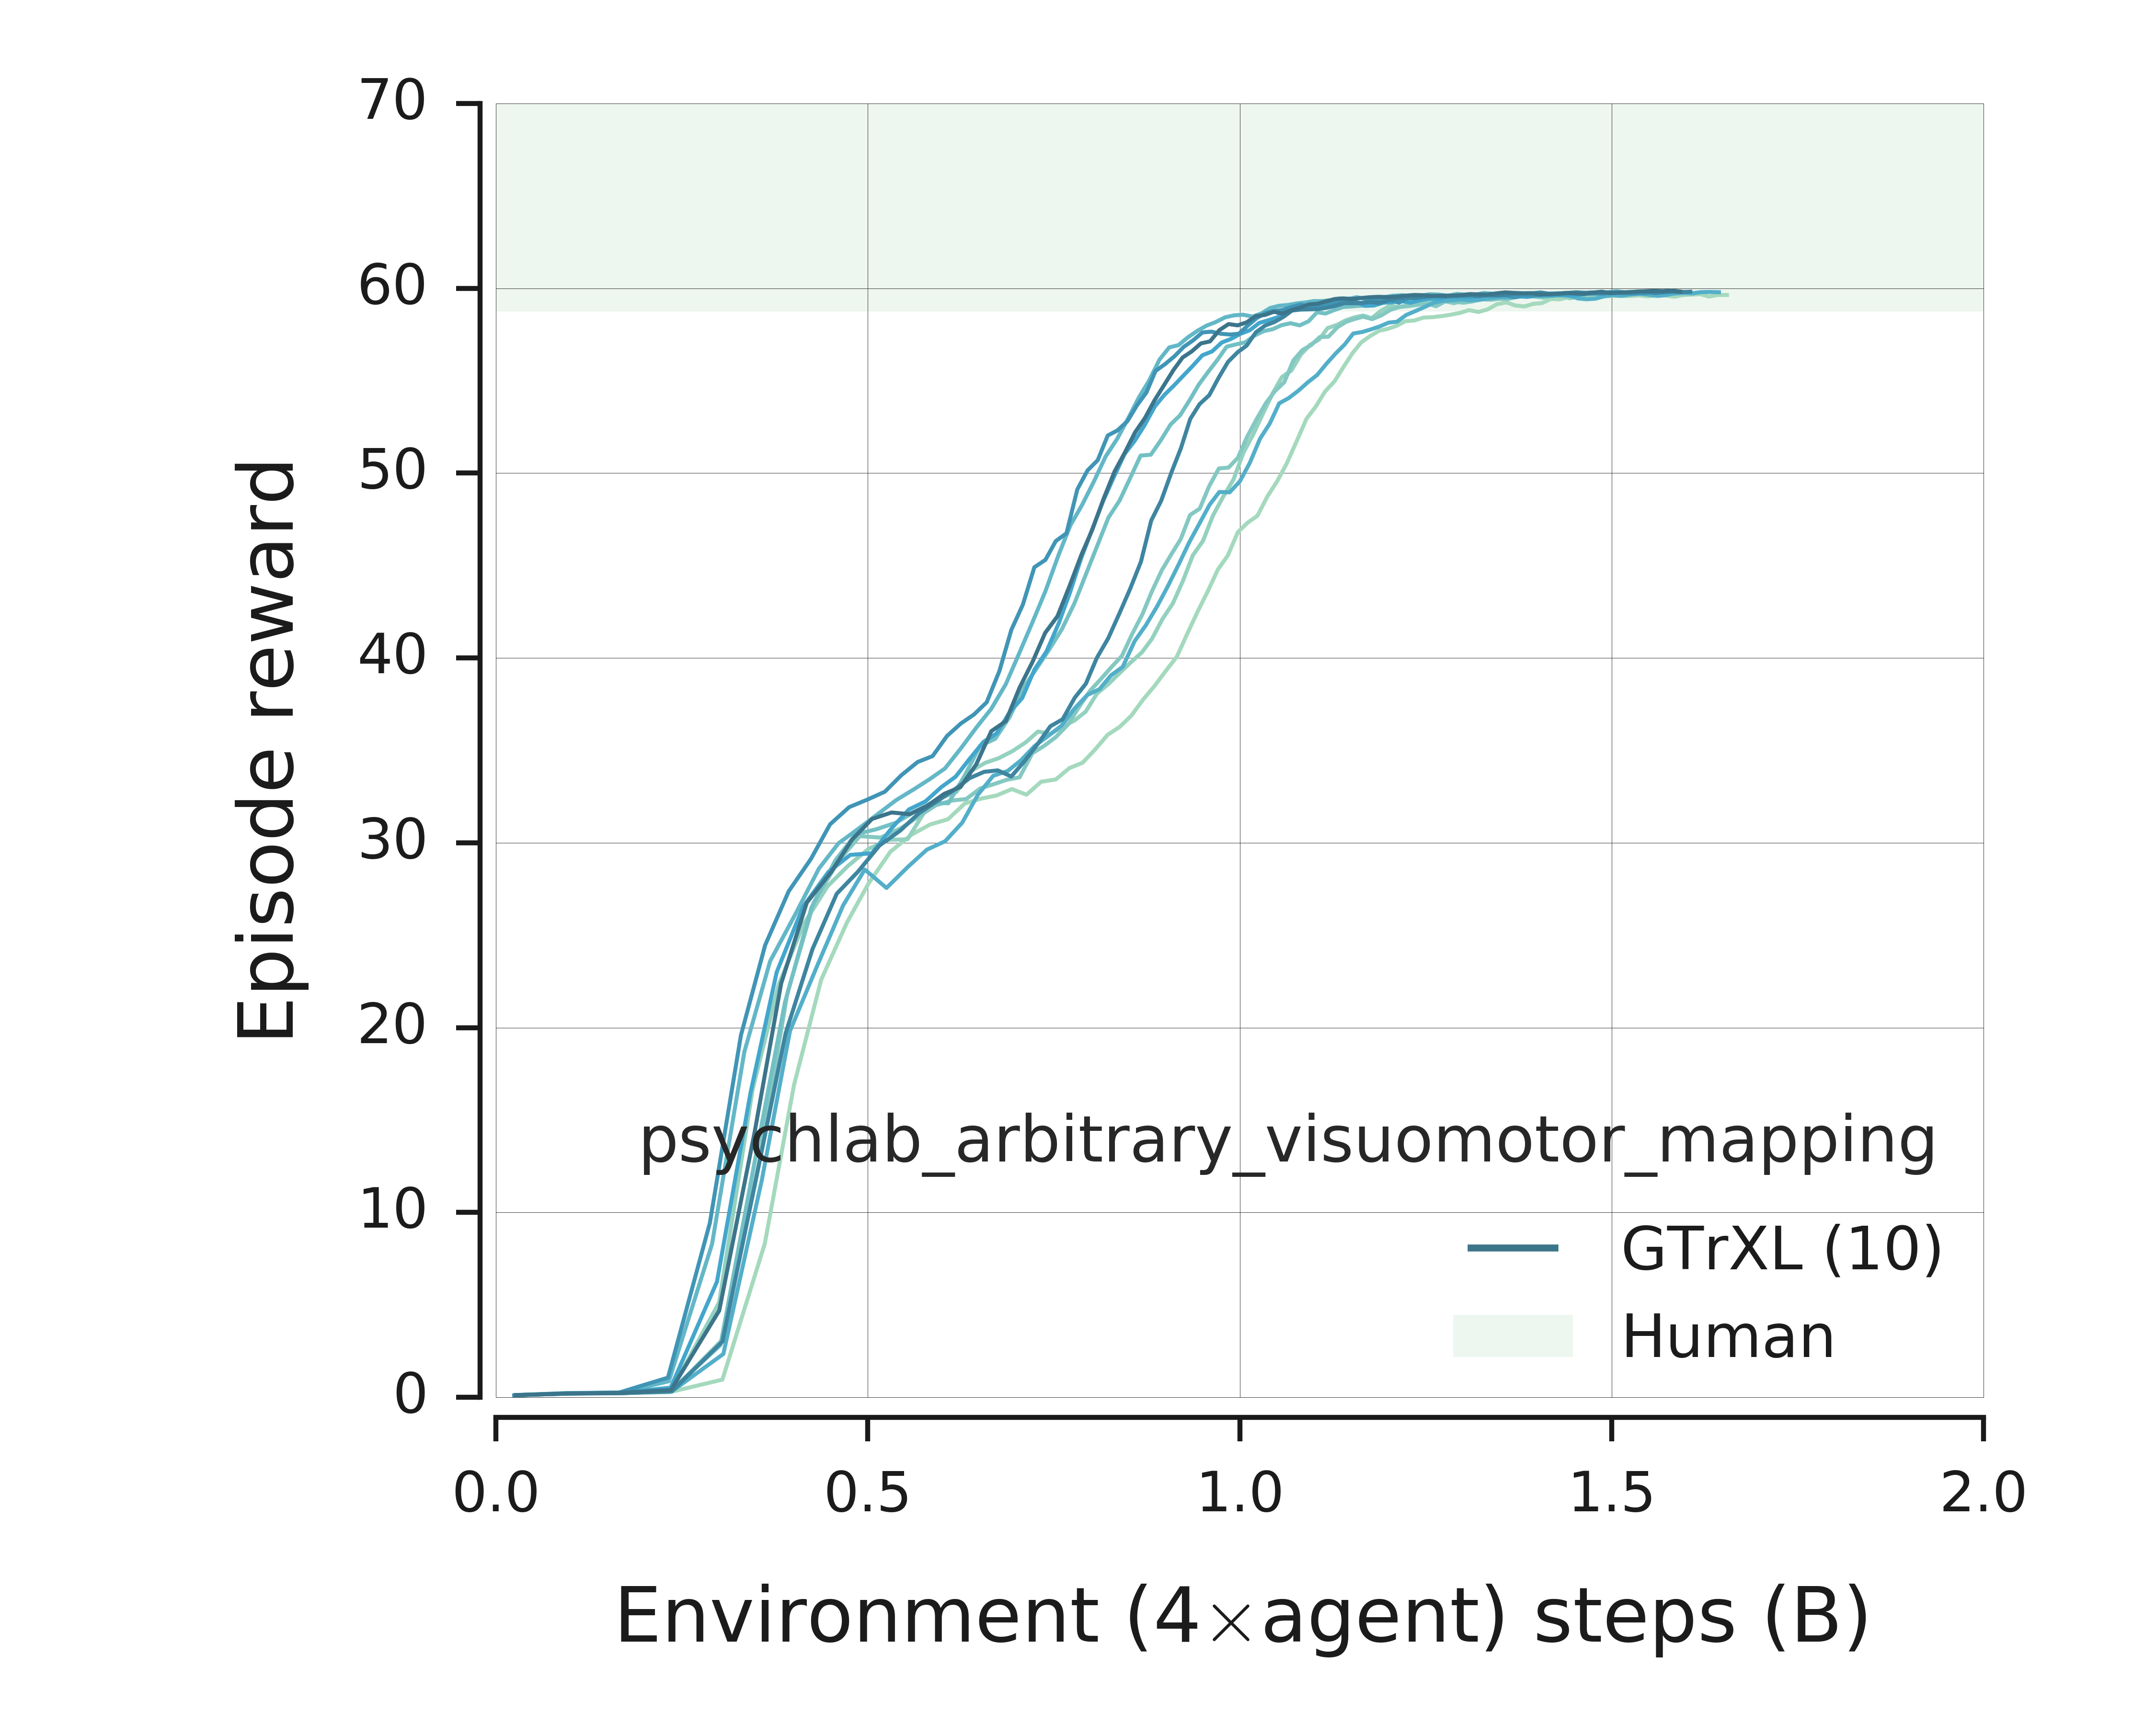 Learning curves for the DMLab Arbitrary Visuomotor Mapping task using a reduced action set.